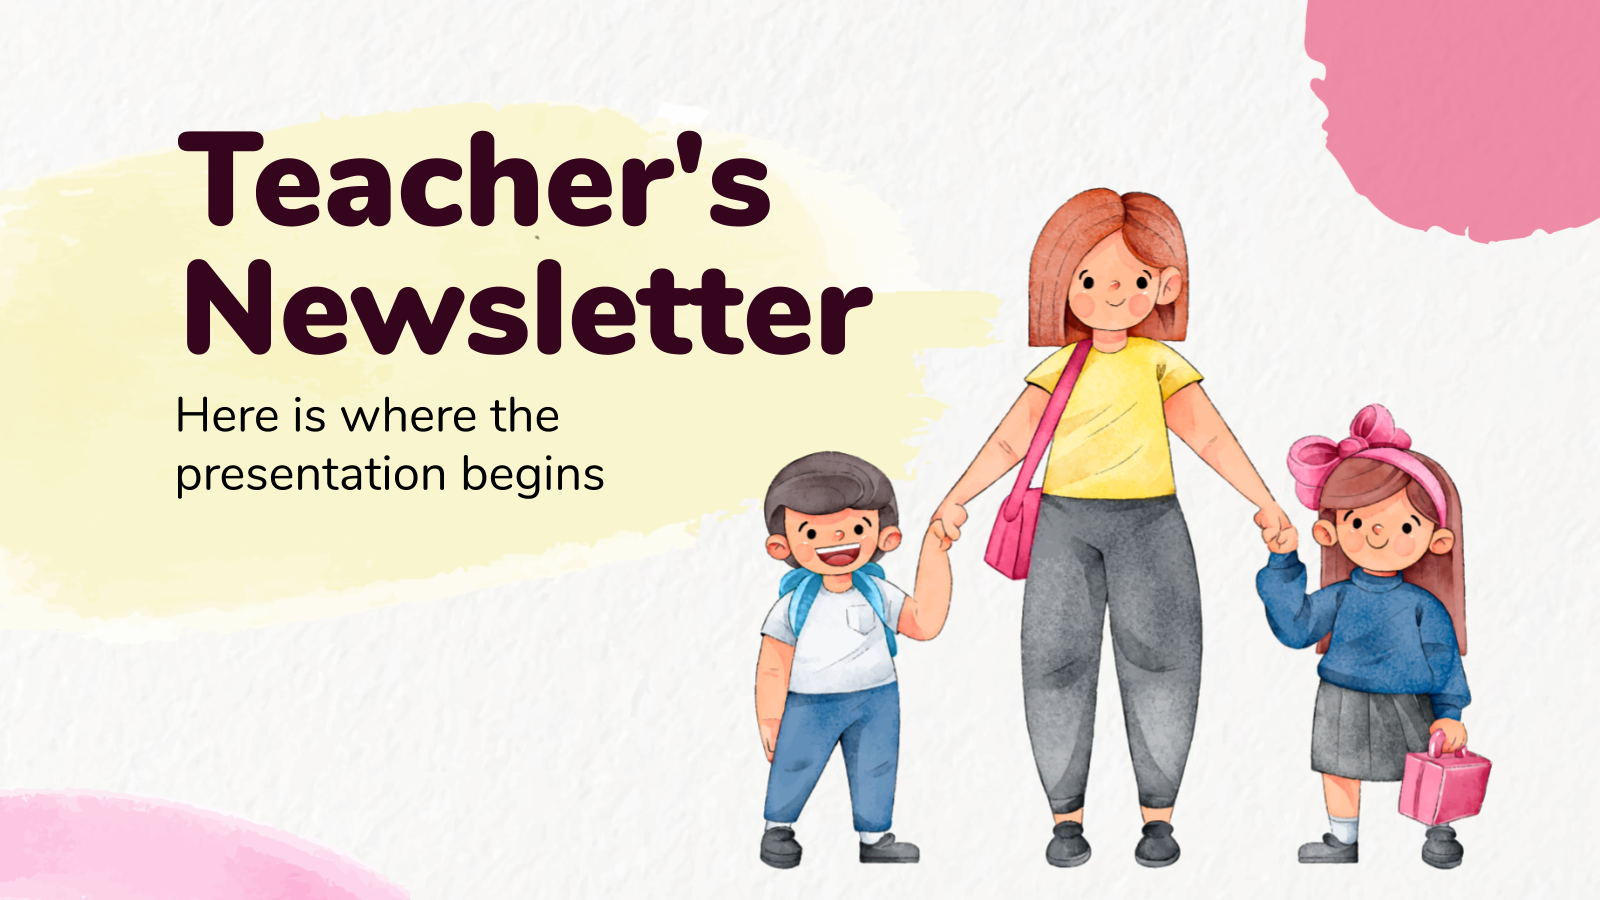 Teacher's Newsletter presentation template